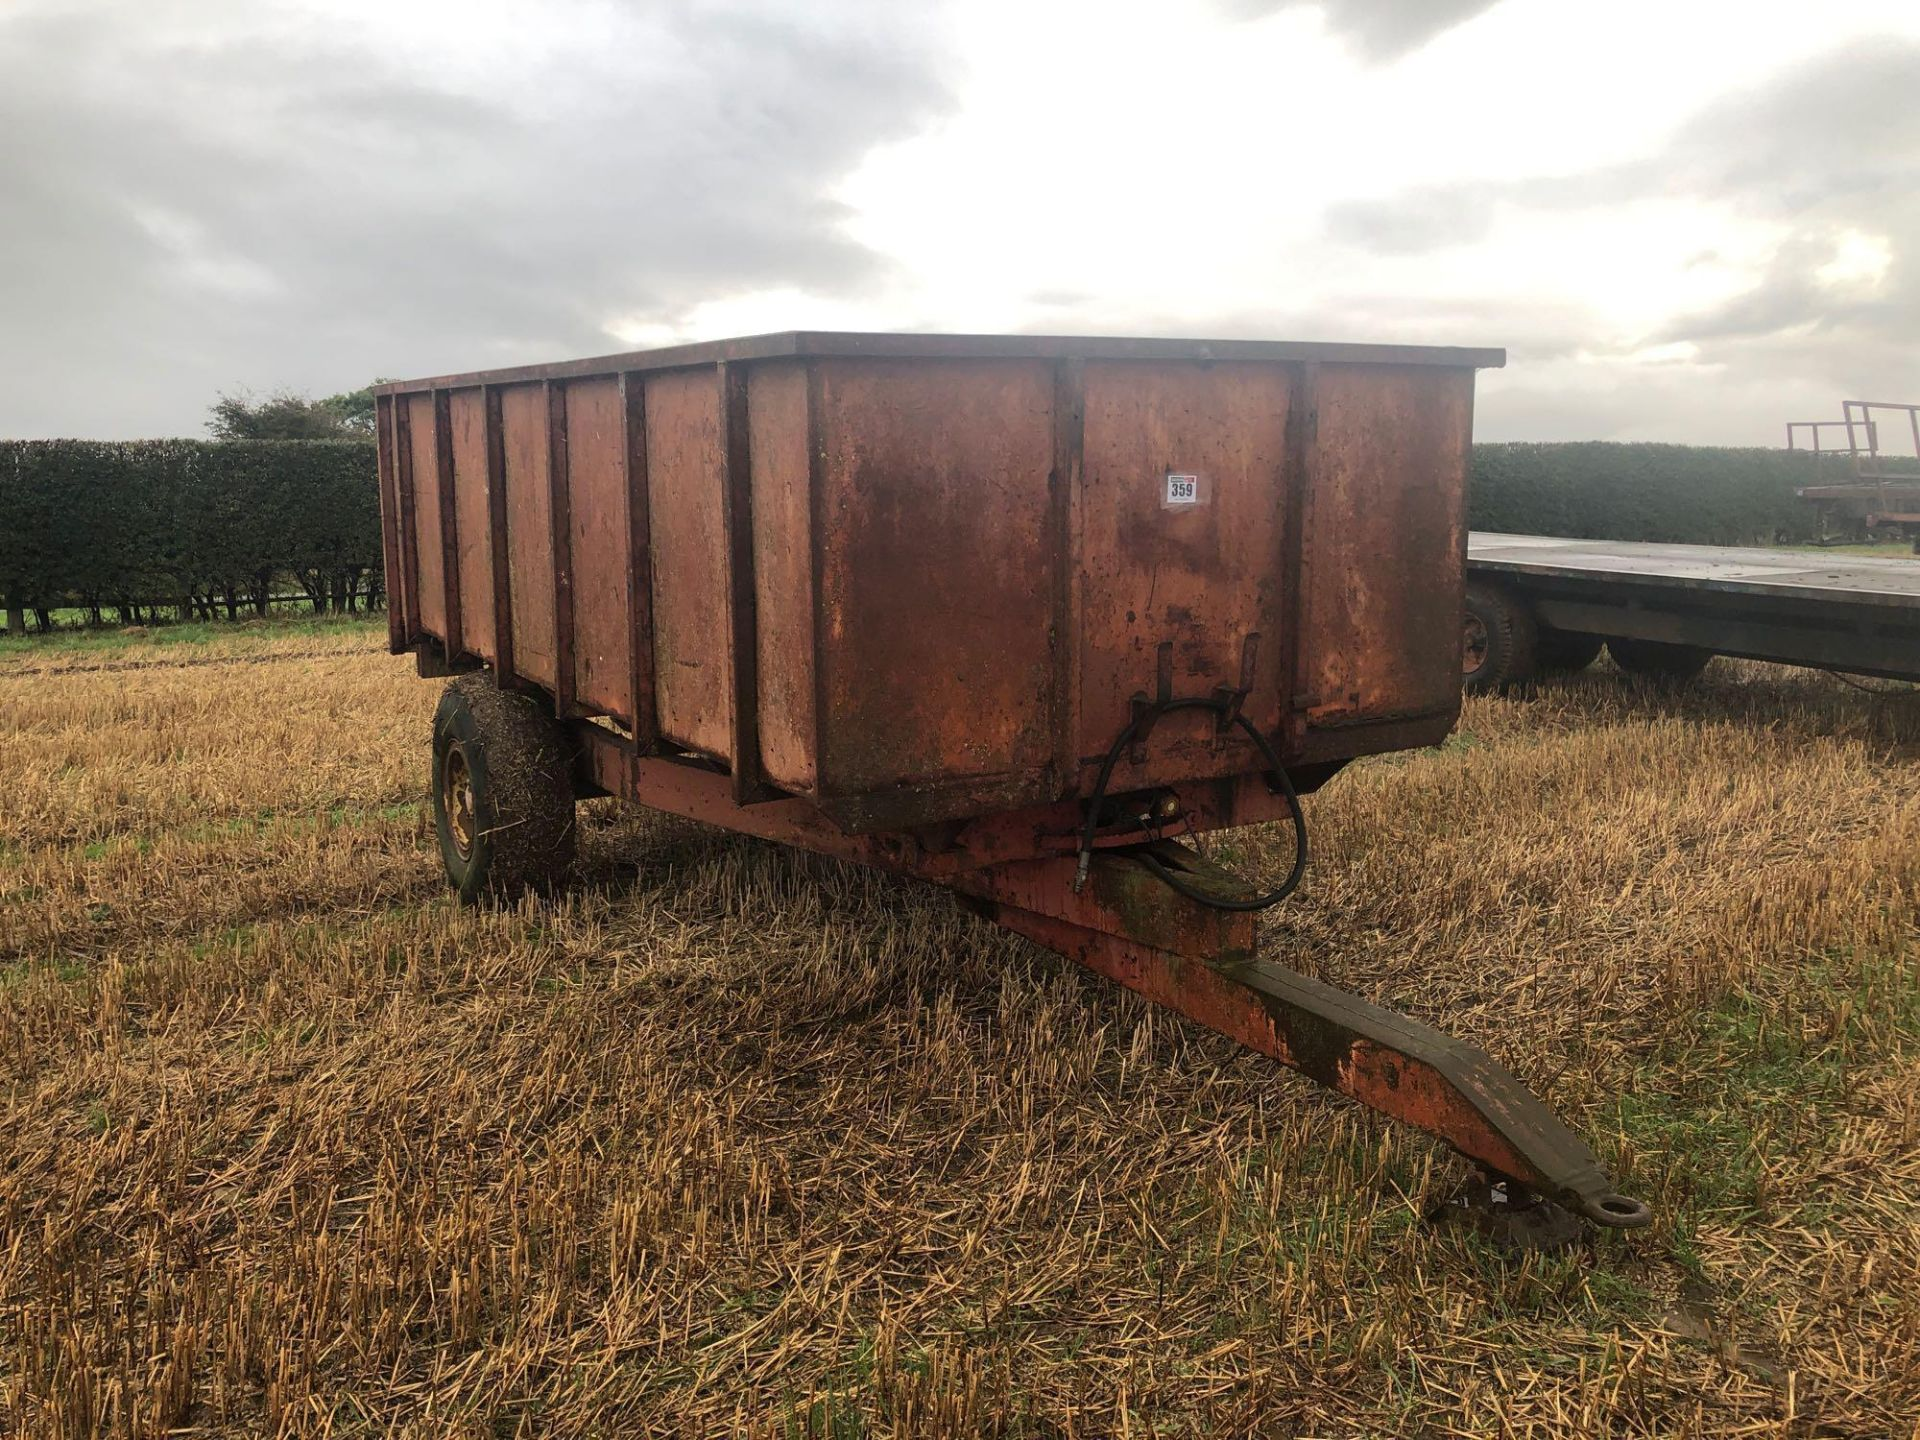 1978 6t homemade single axle trailer. C/w silage sides and back door.